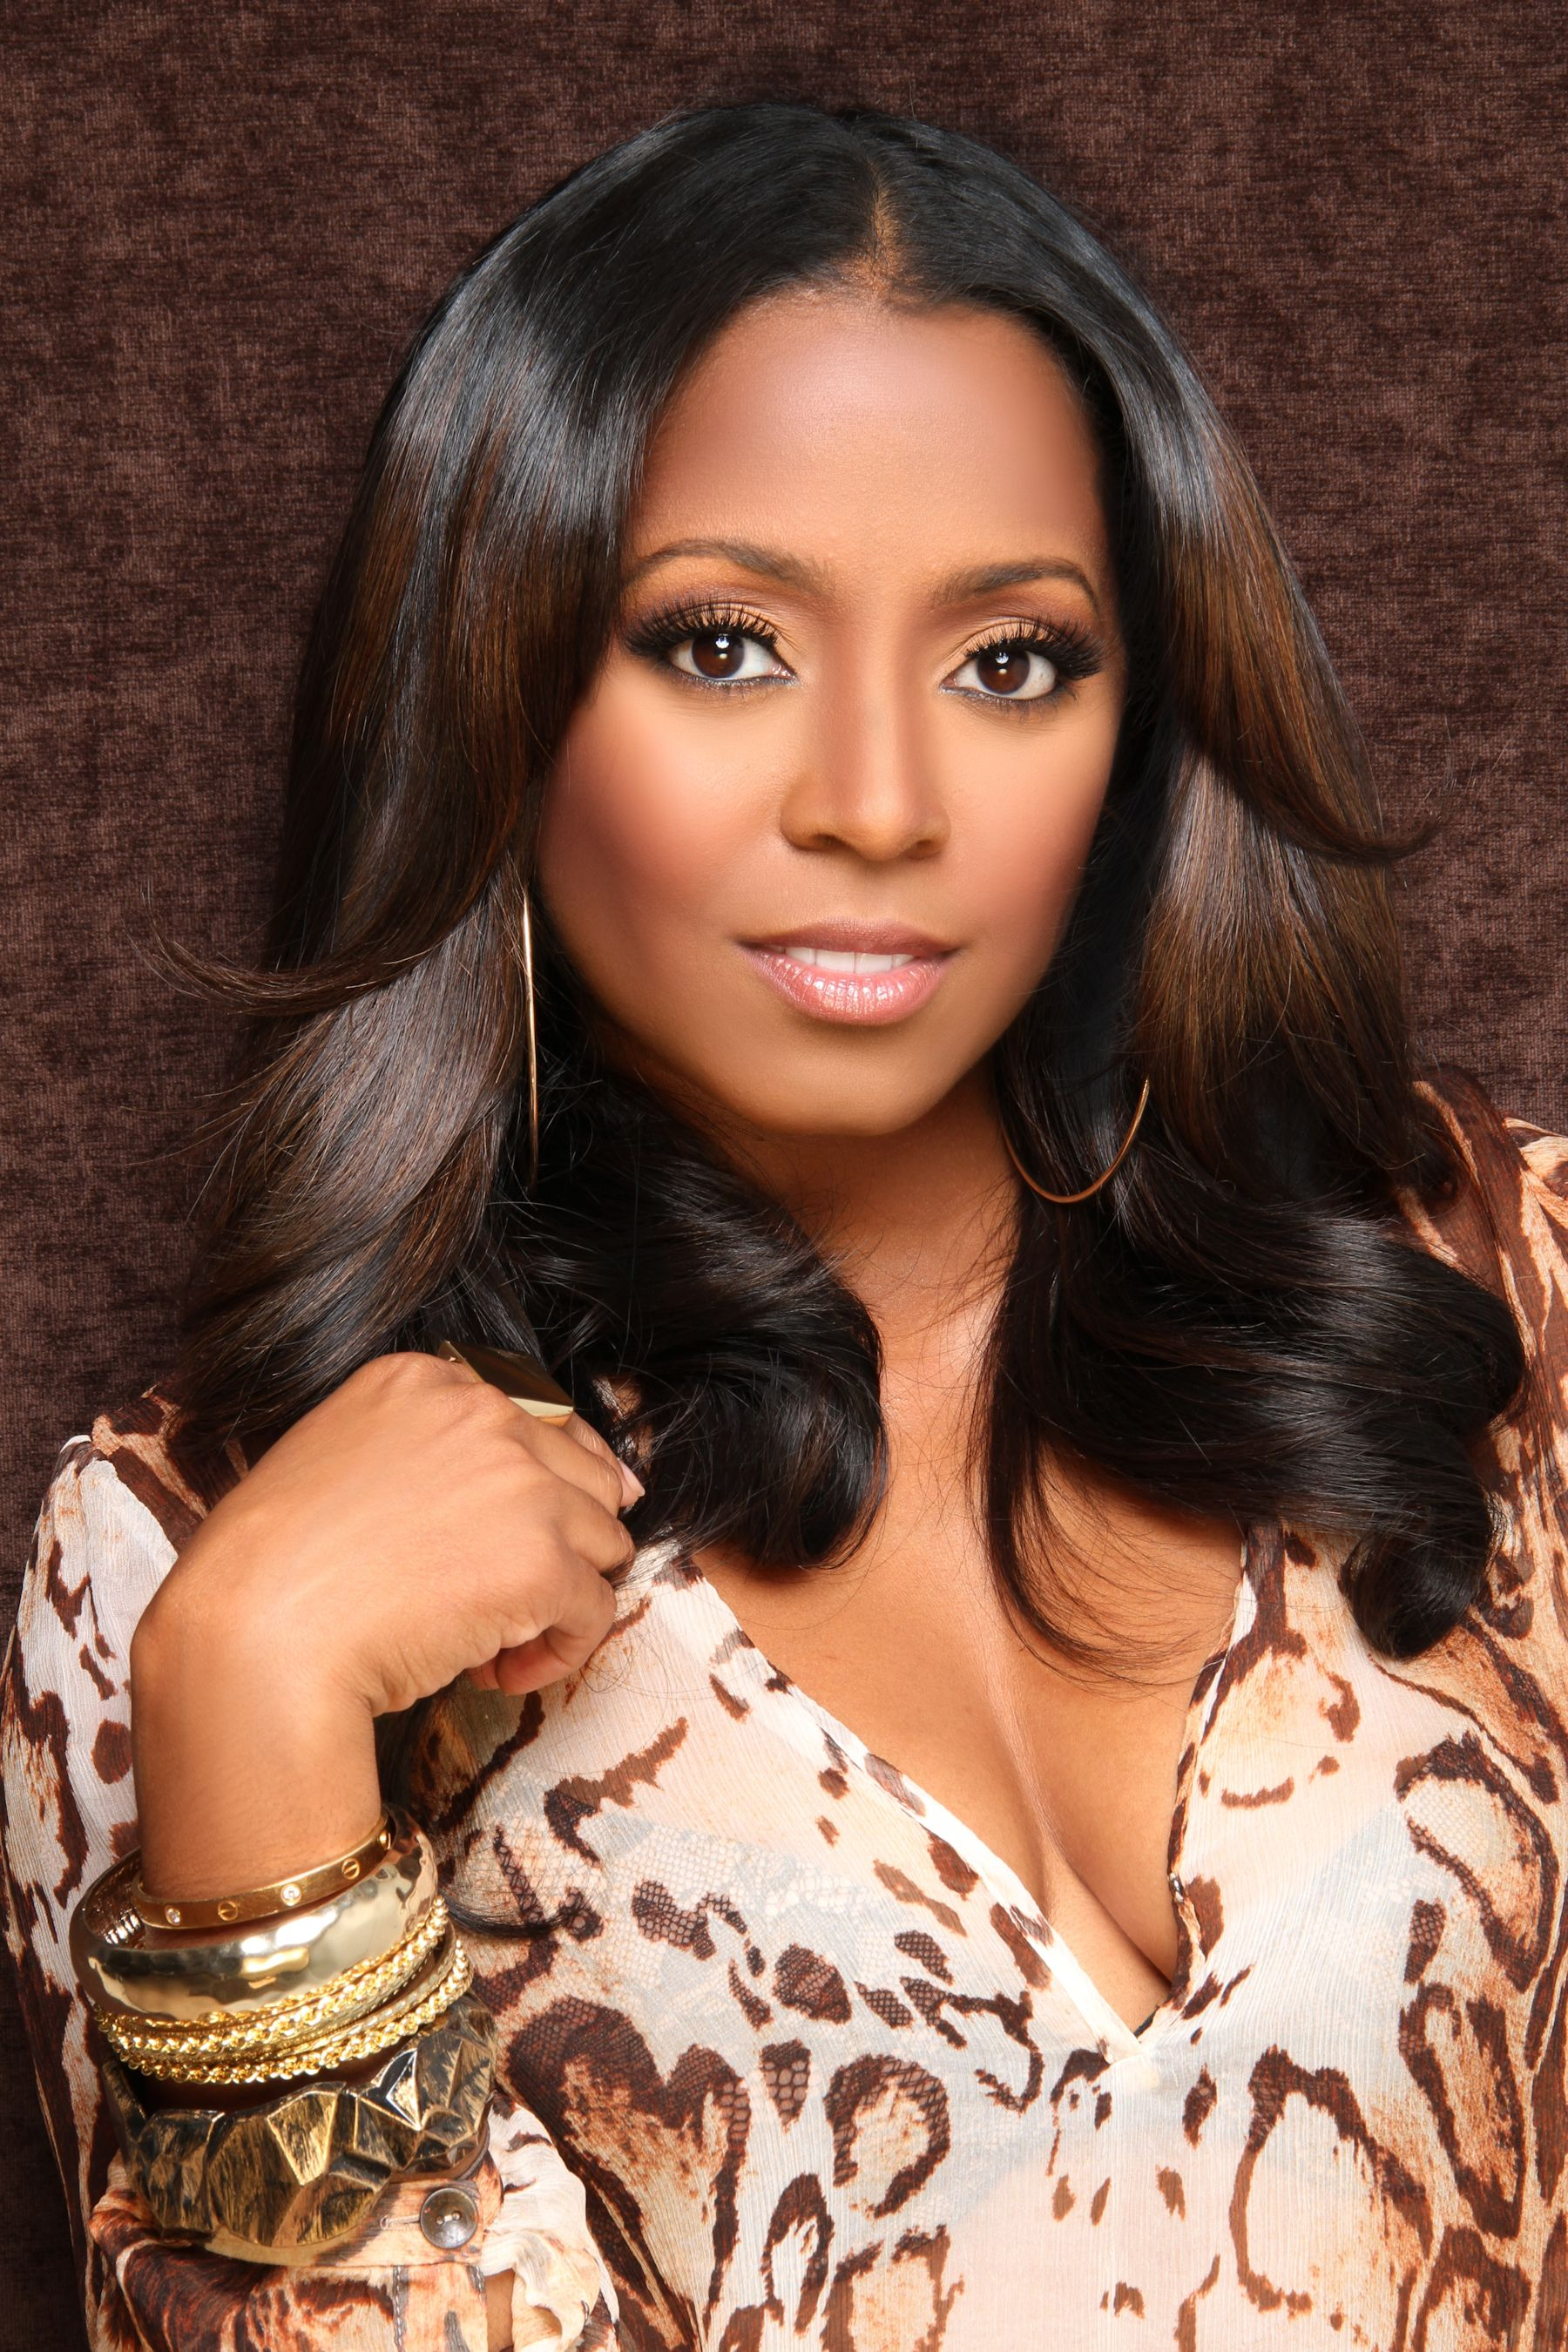 Keisha knight pulliam hentai picture